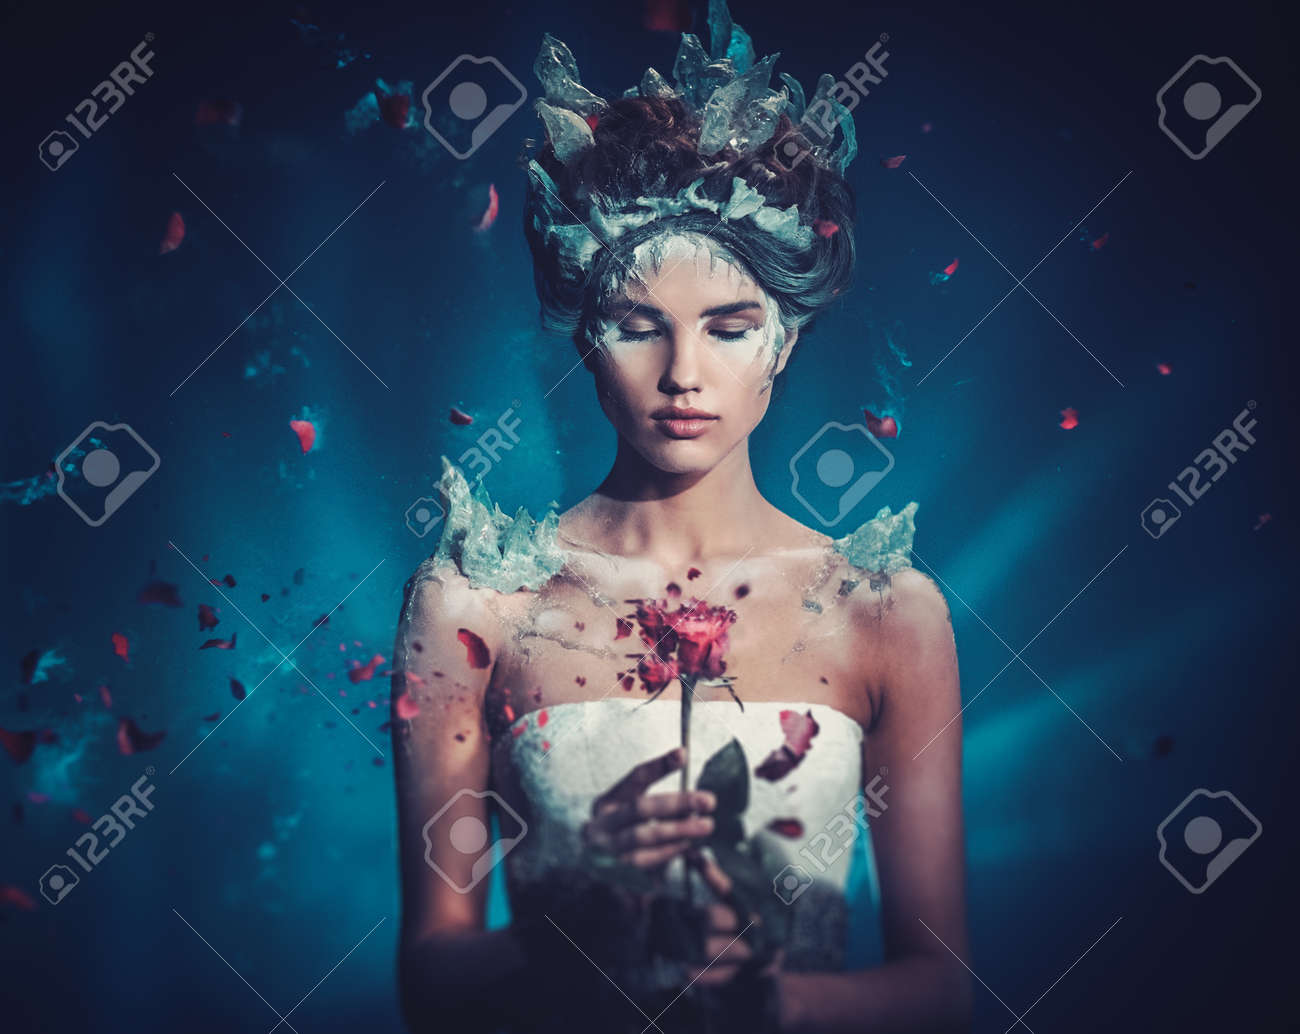 Winter beauty fantasy woman portrait. Beautiful young model girl and blast of frozen rose. Stock Photo - 50580716